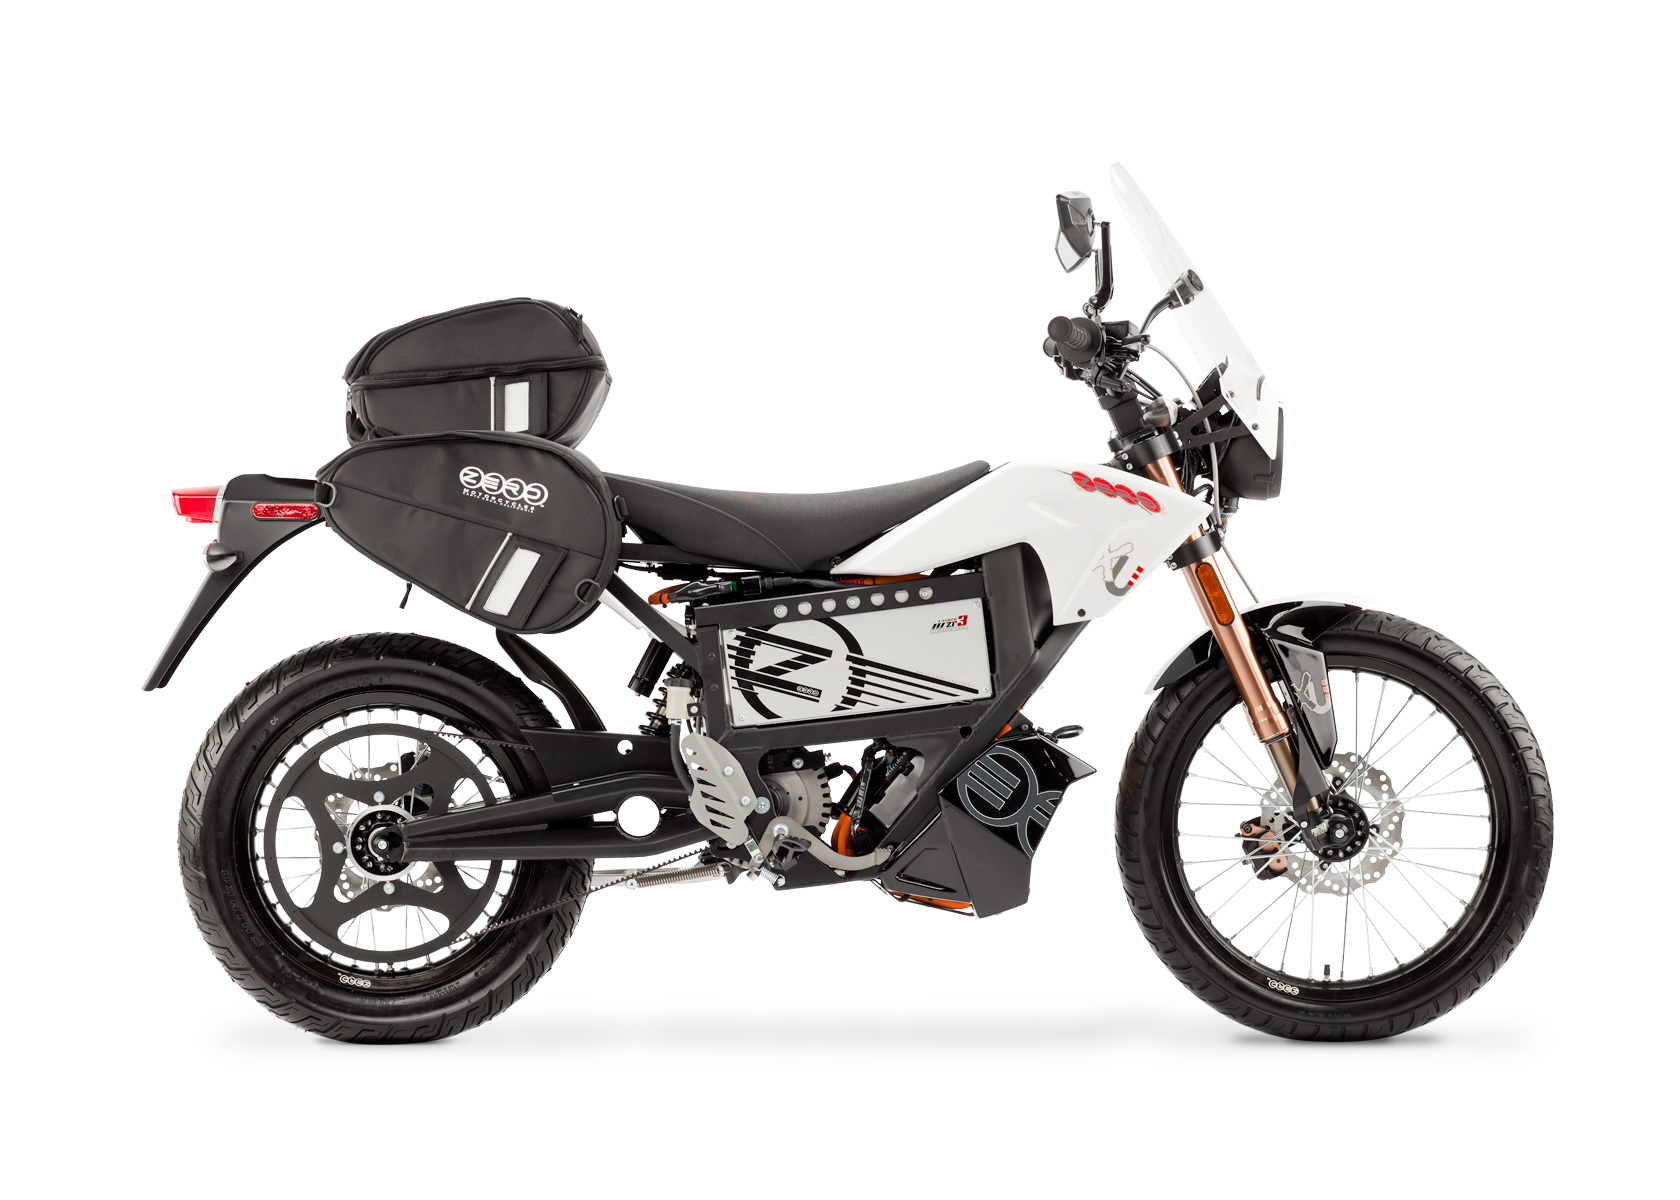 2012 Zero XU Electric Motorcycle: Profile Right with Side Bags and Windscreen, White Background